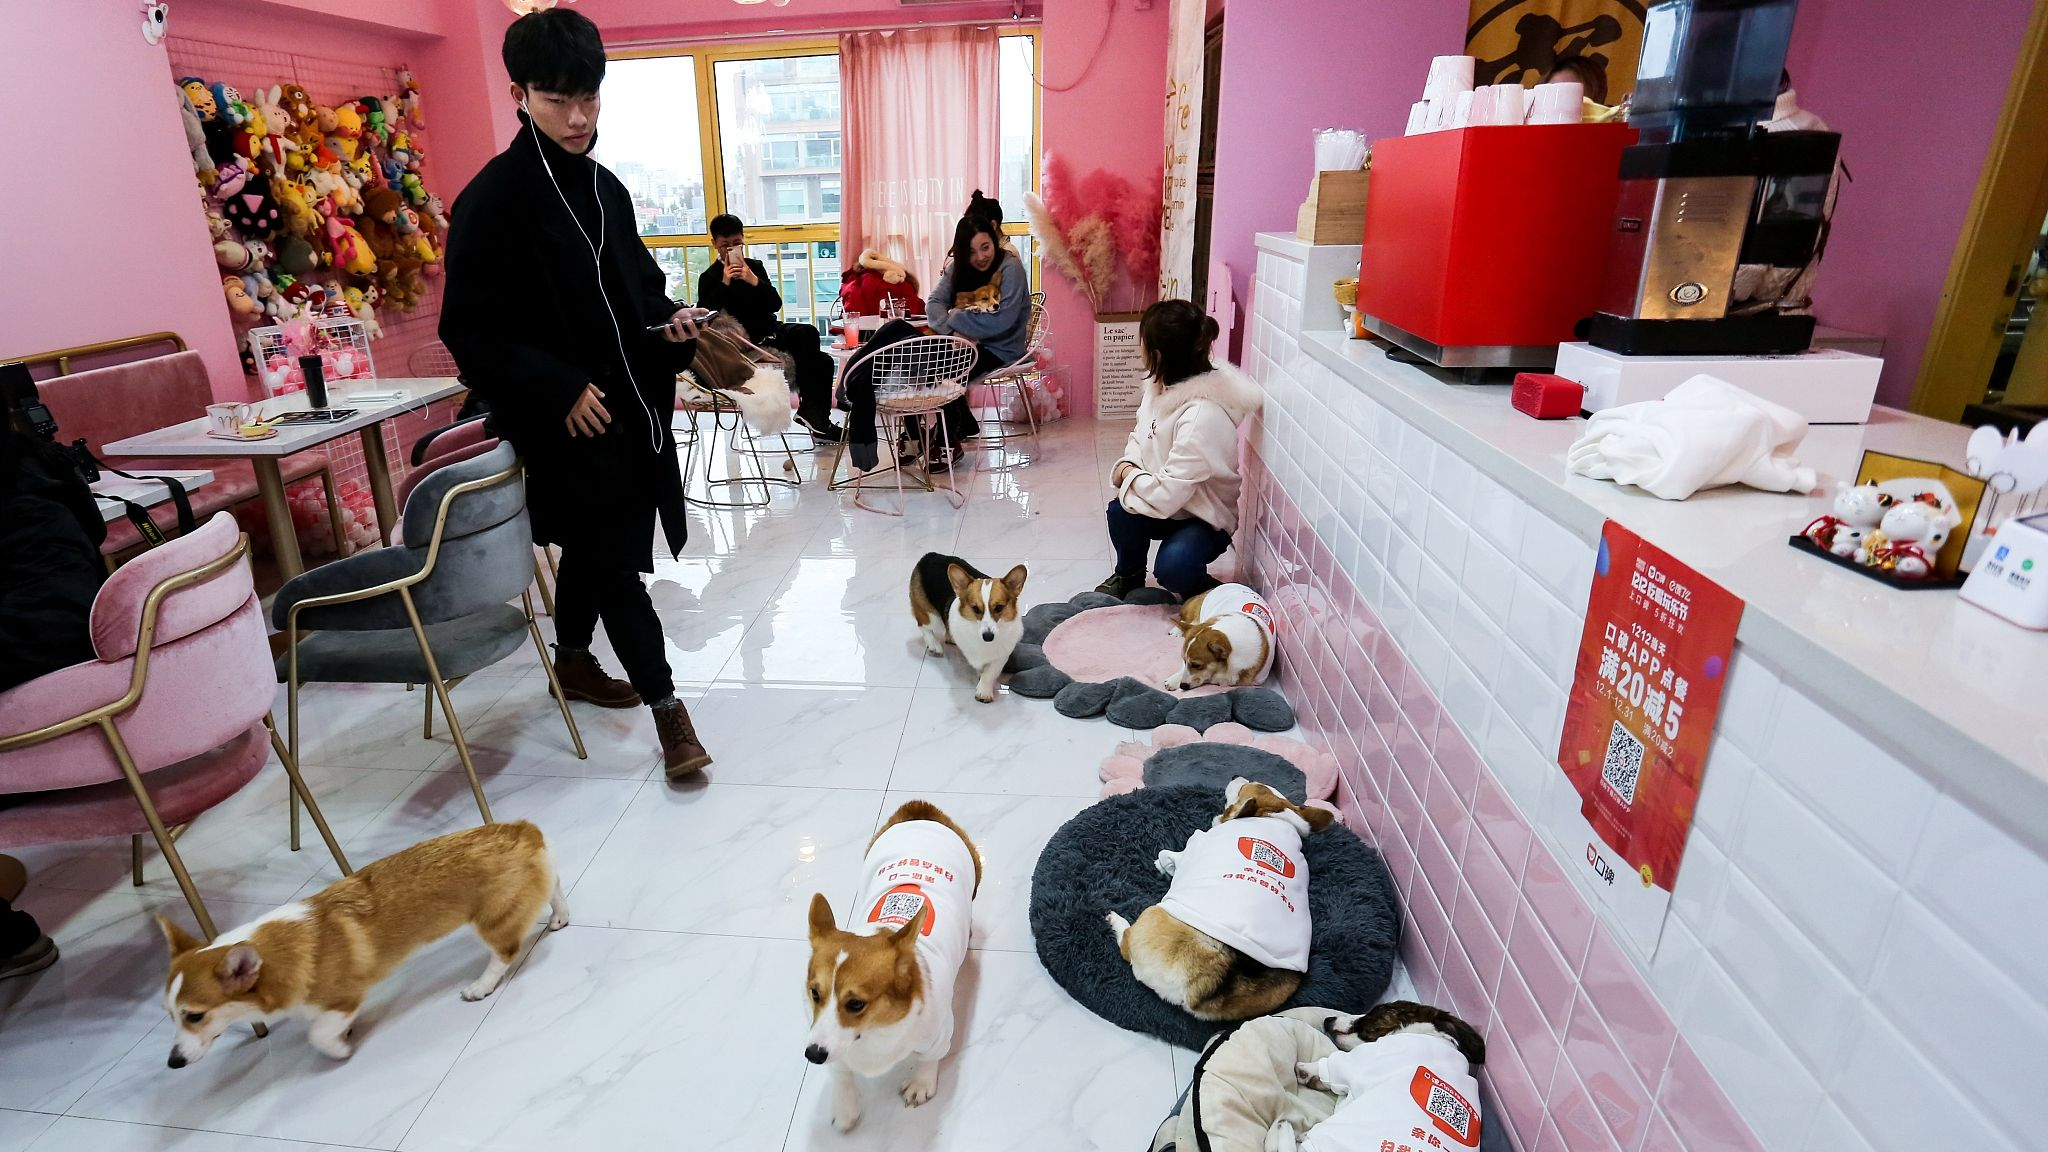 A Dog Cafe In Shanghai Has Employed Six Cute Corgis To Take